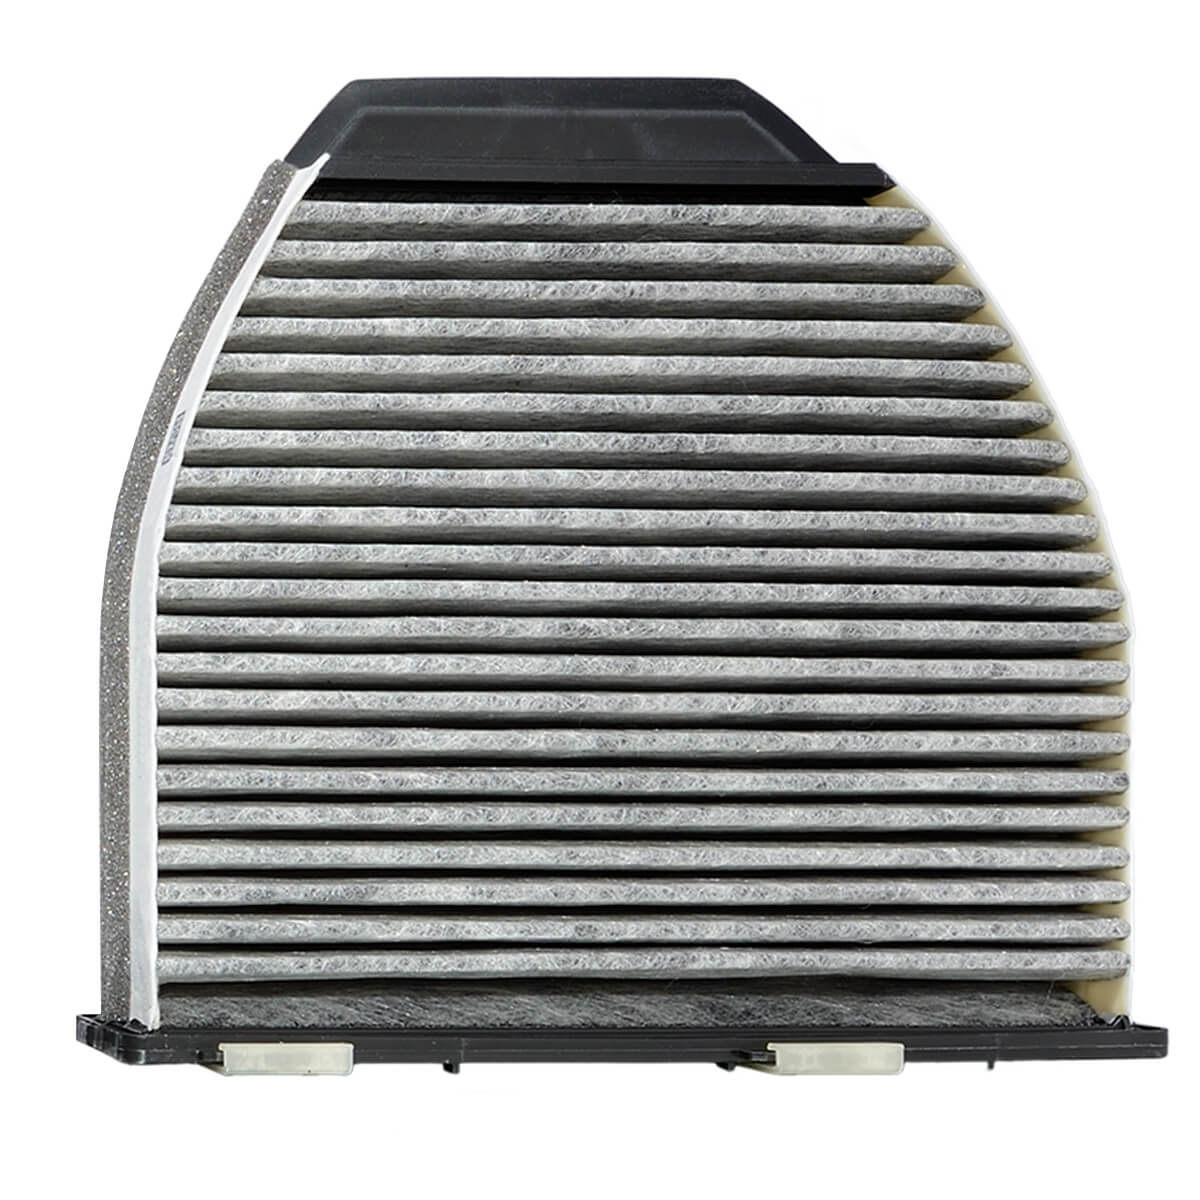 BEDFORD CHEVANNE Cabin Filter